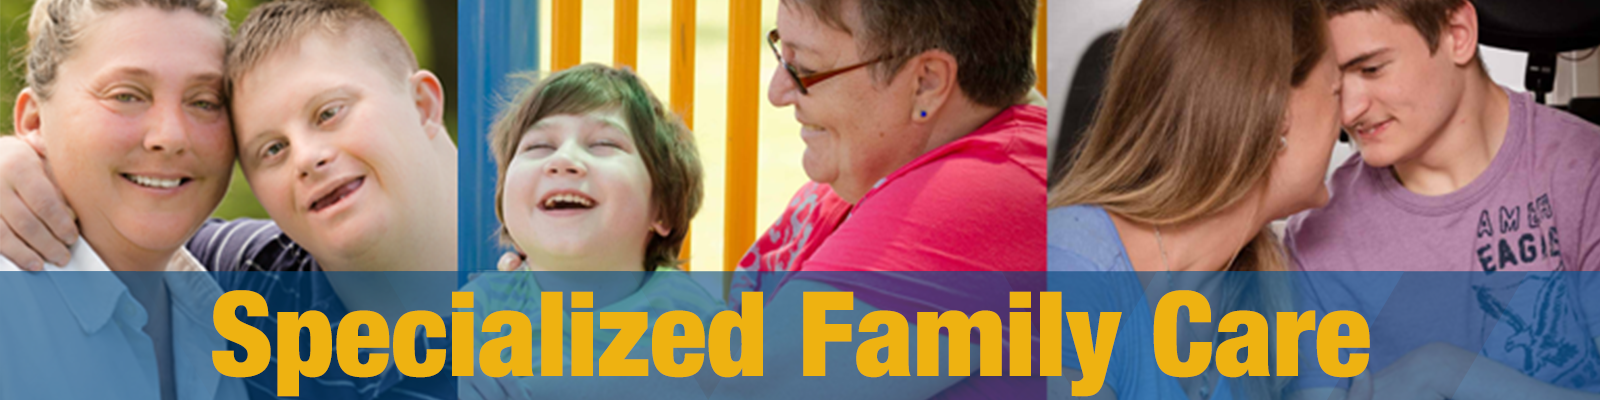 Specialized Family Care Program